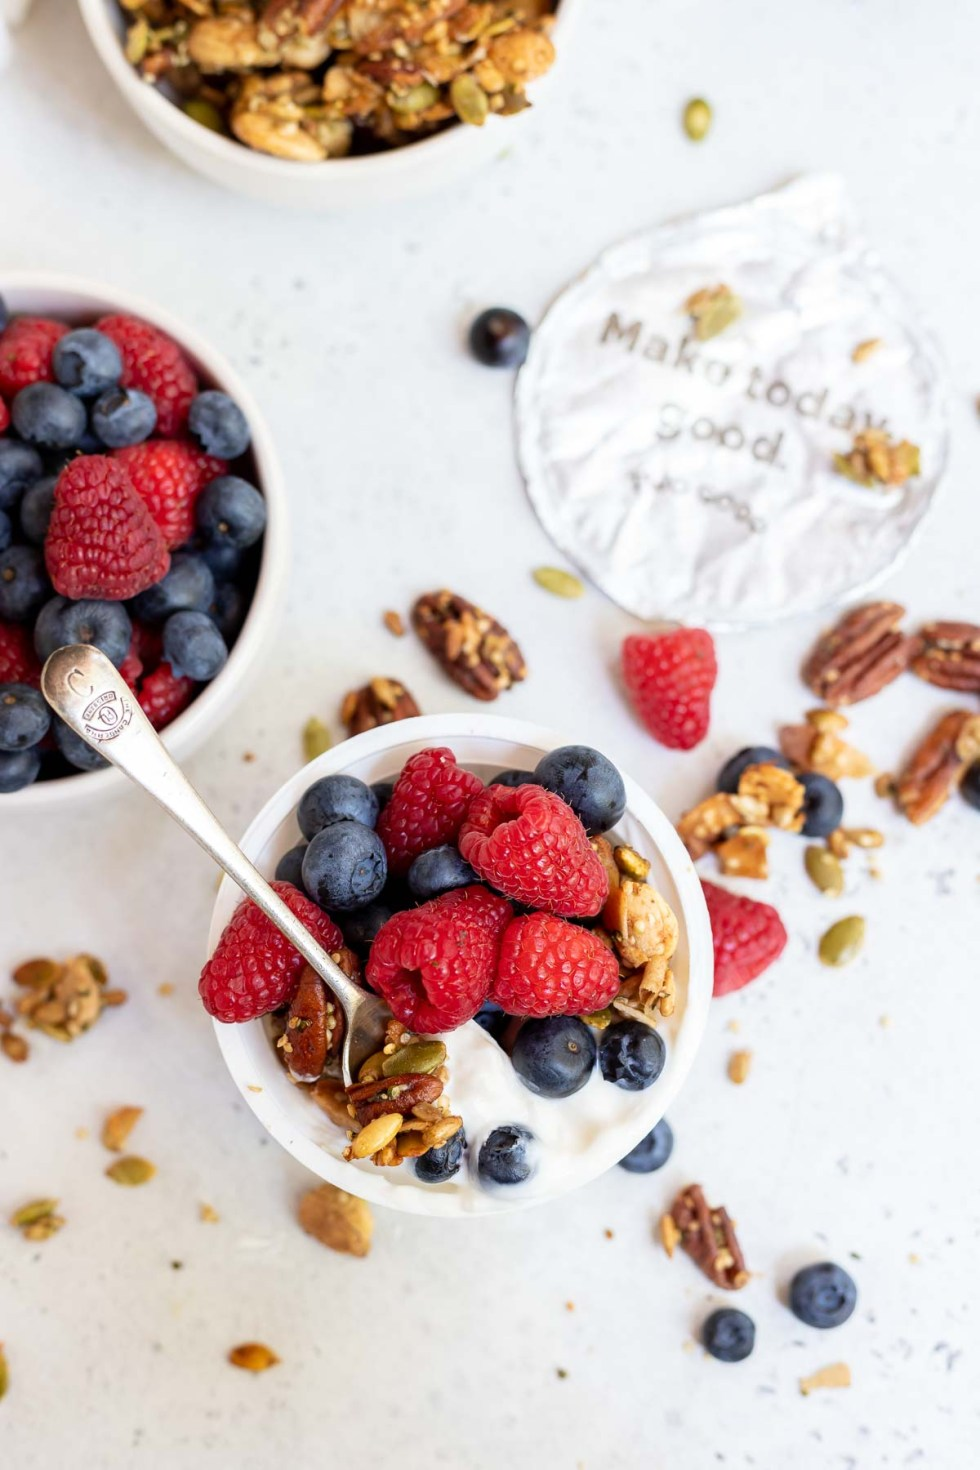 yogurt cup topped with granola and berries